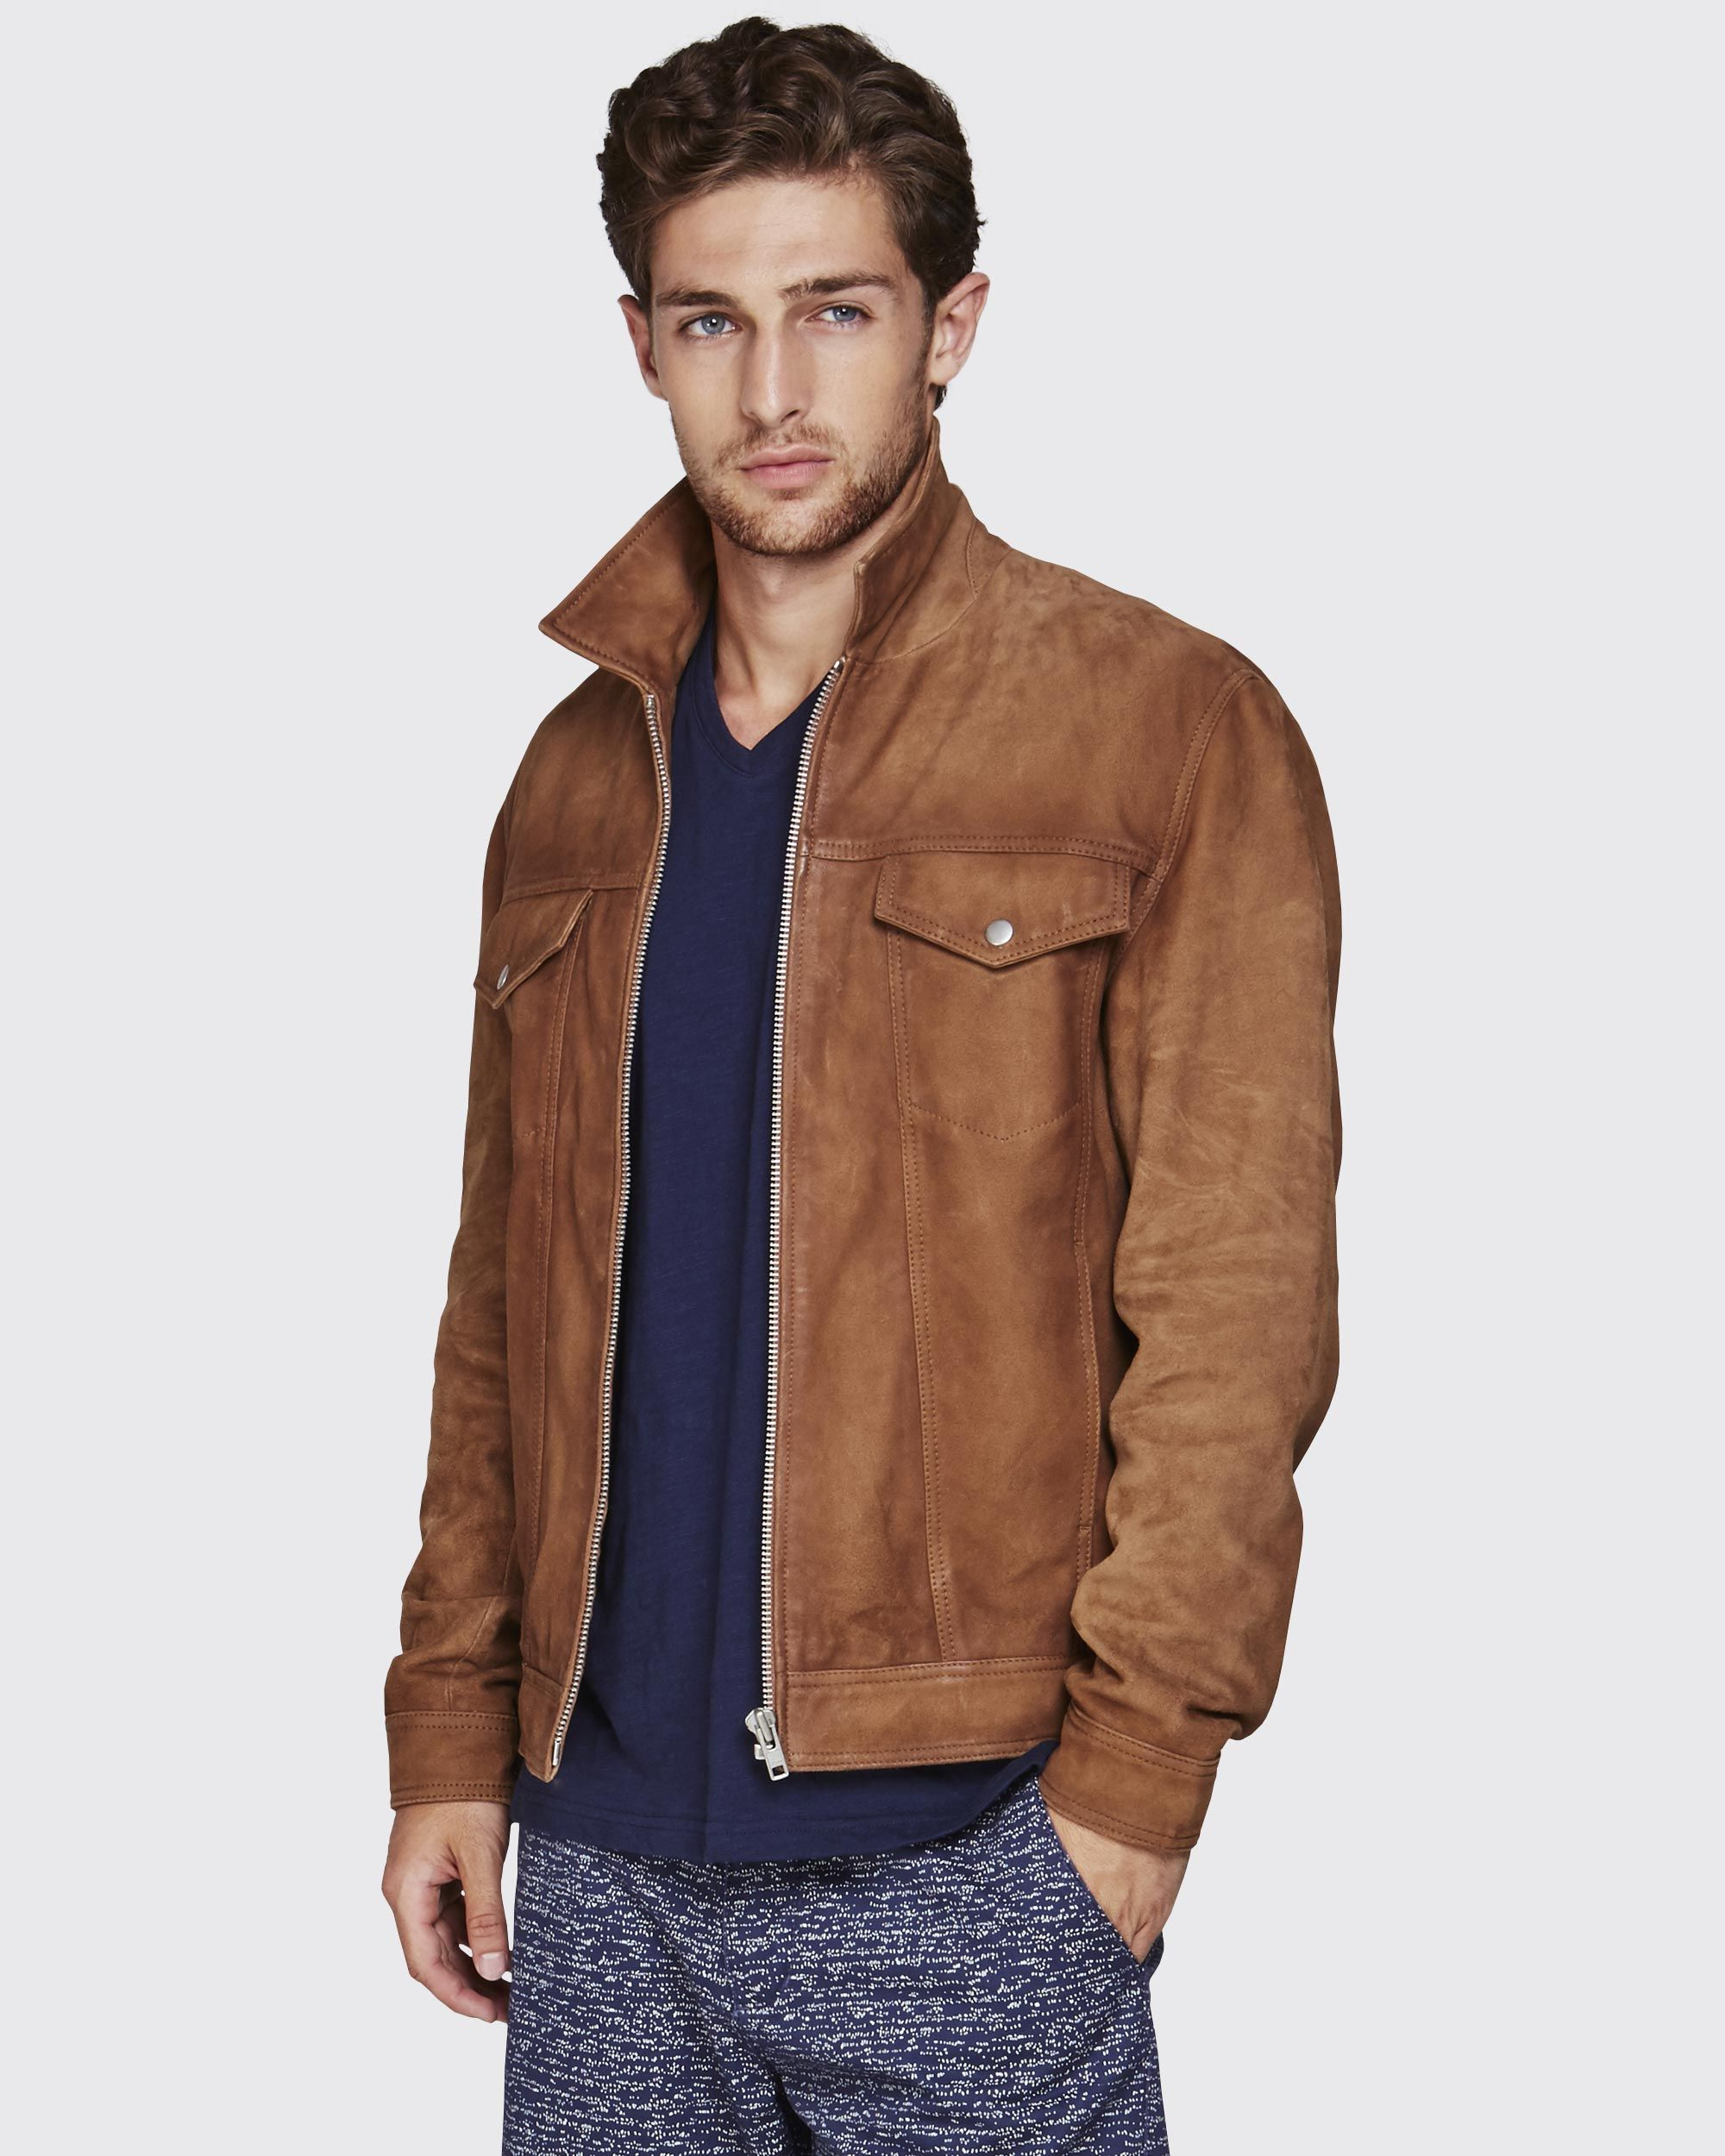 pacific leather jacket 0057